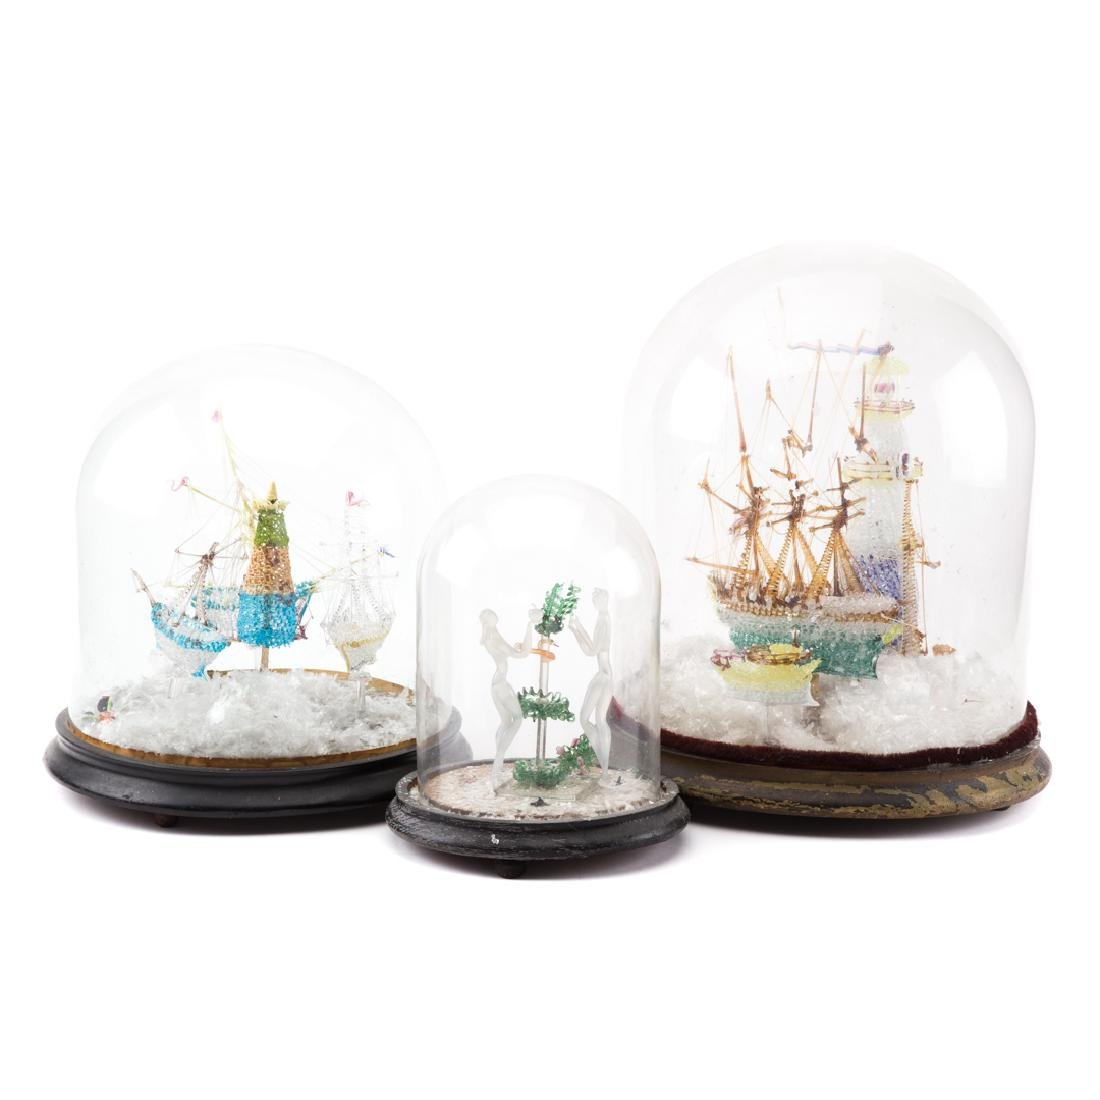 Three blown glass dioramas with domes